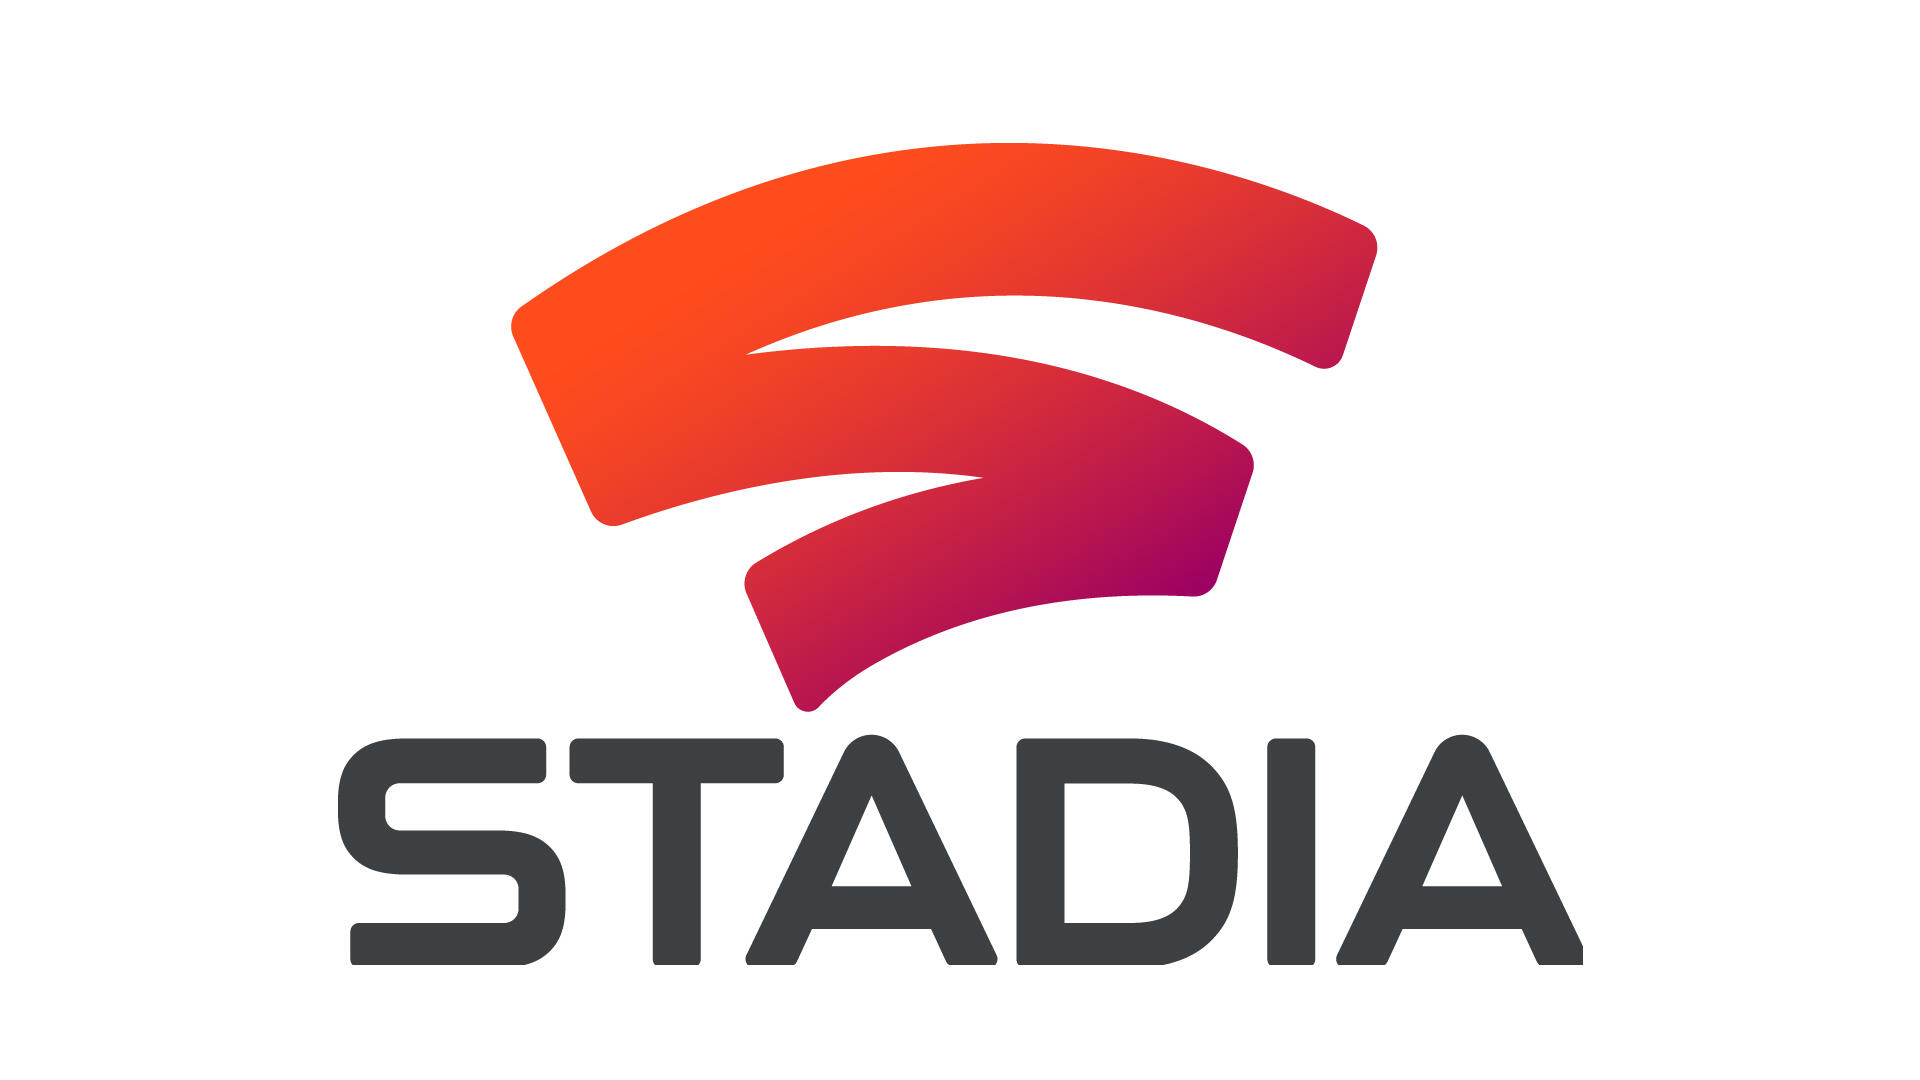 Google Stadia Release Date, Price, Games - What is Google Stadia? What Internet Speed is Needed?